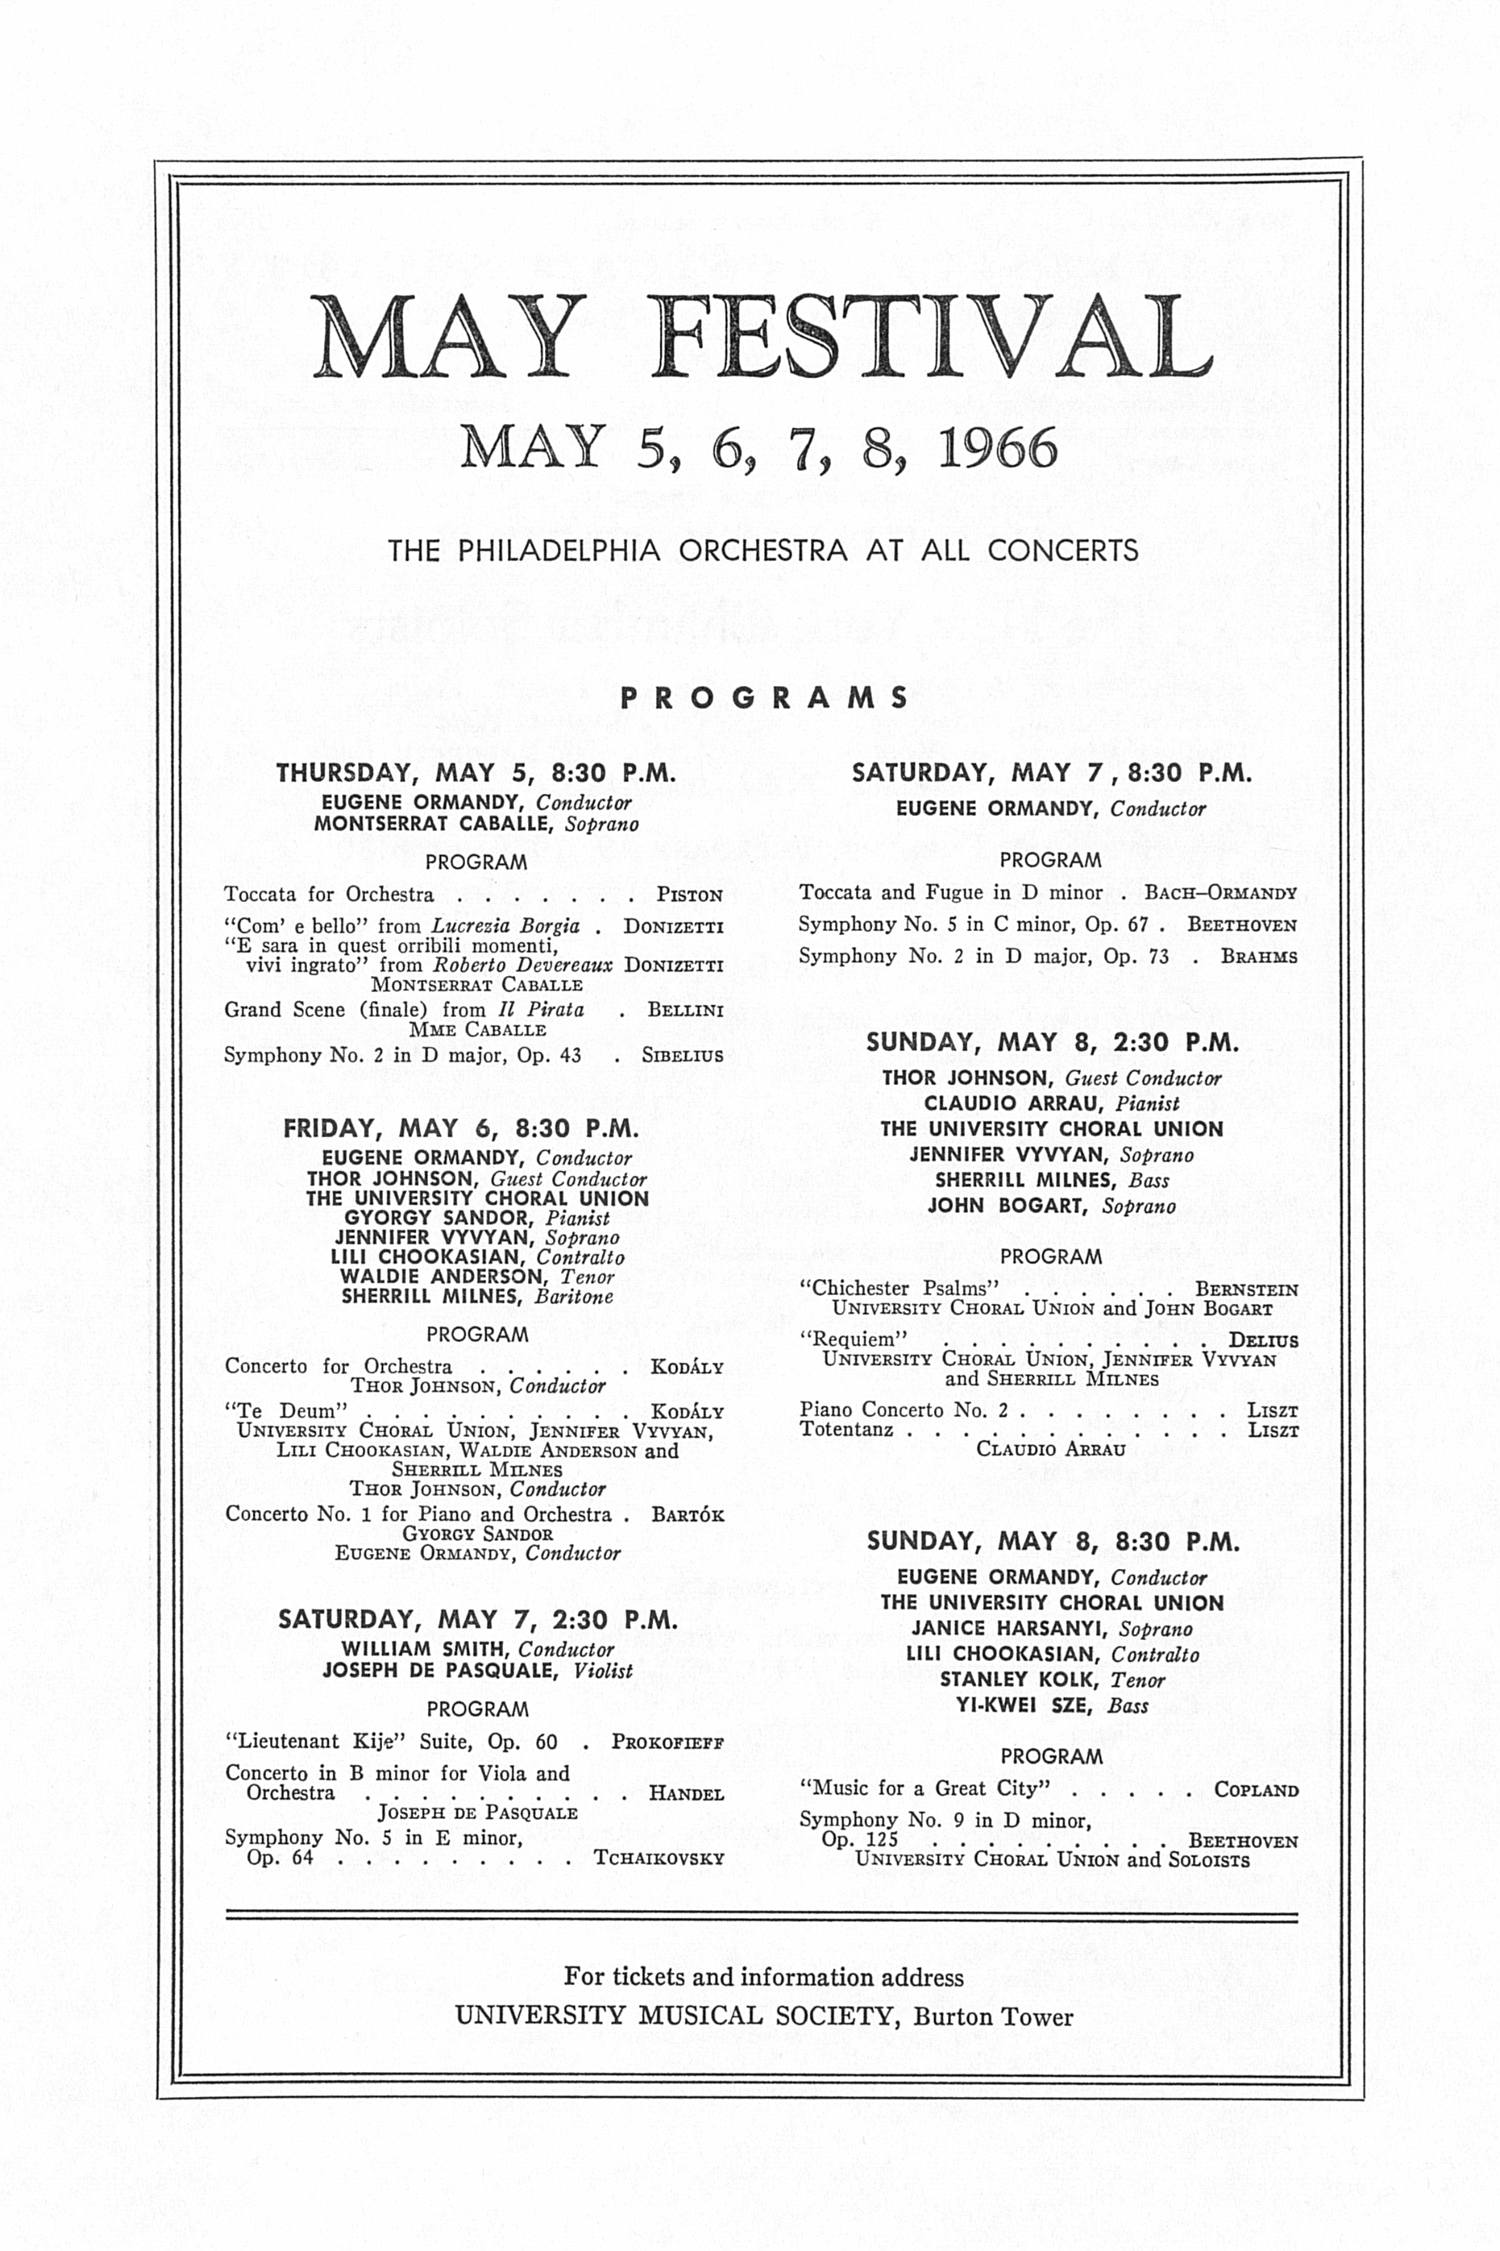 UMS Concert Program, February 19, 1966: Twenty-sixth Annual Chamber Music Festival --  image